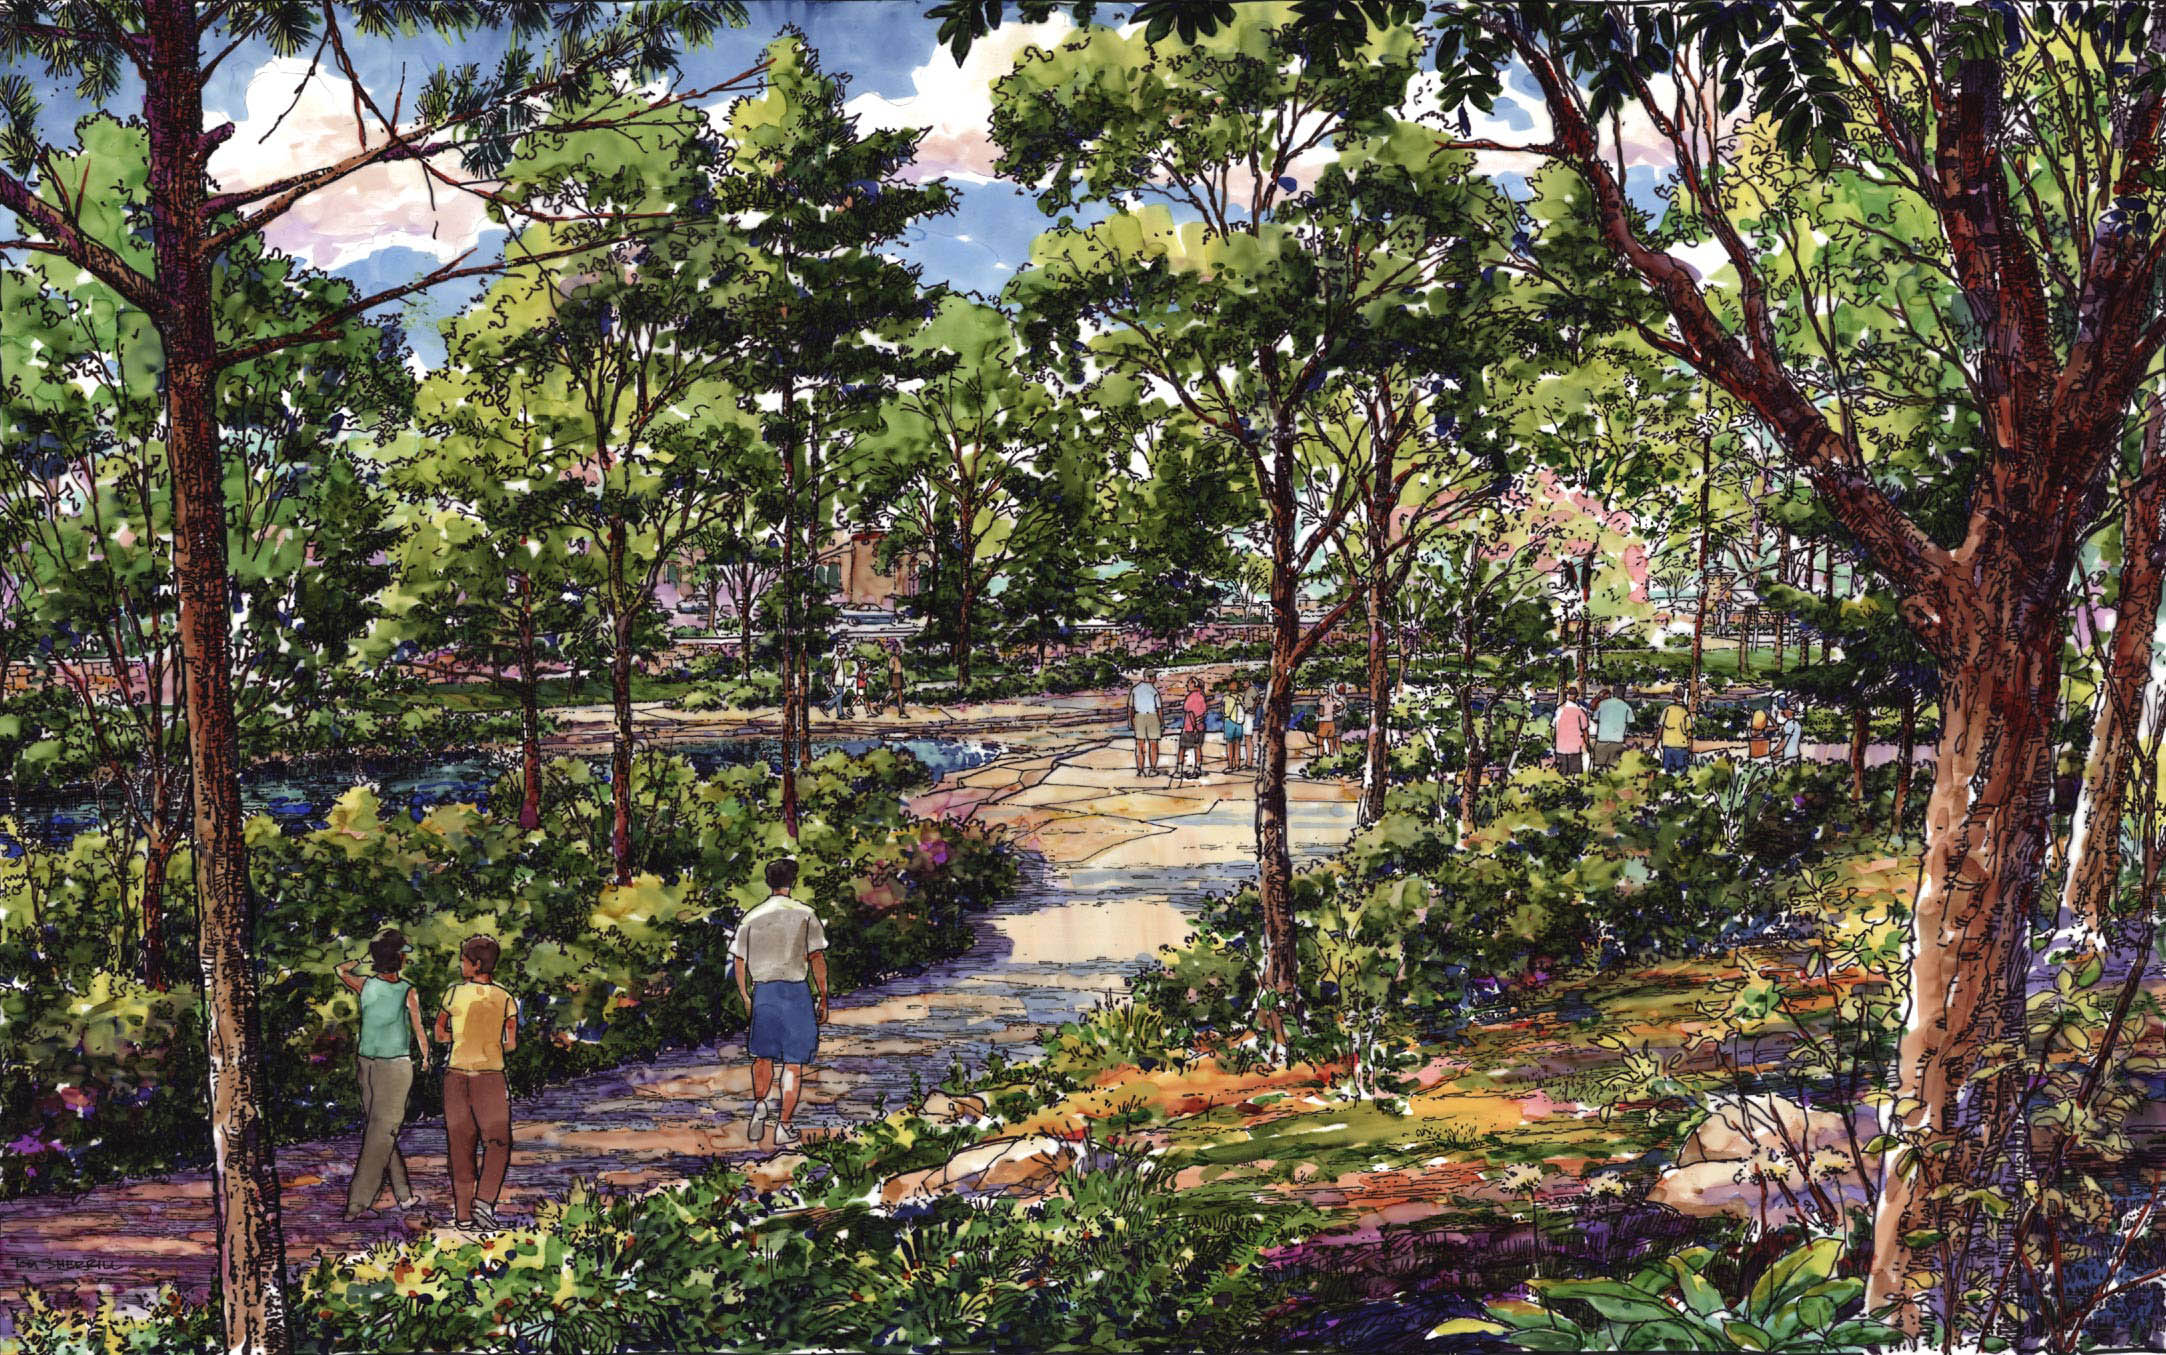 KSU_ForestGarden.jpg